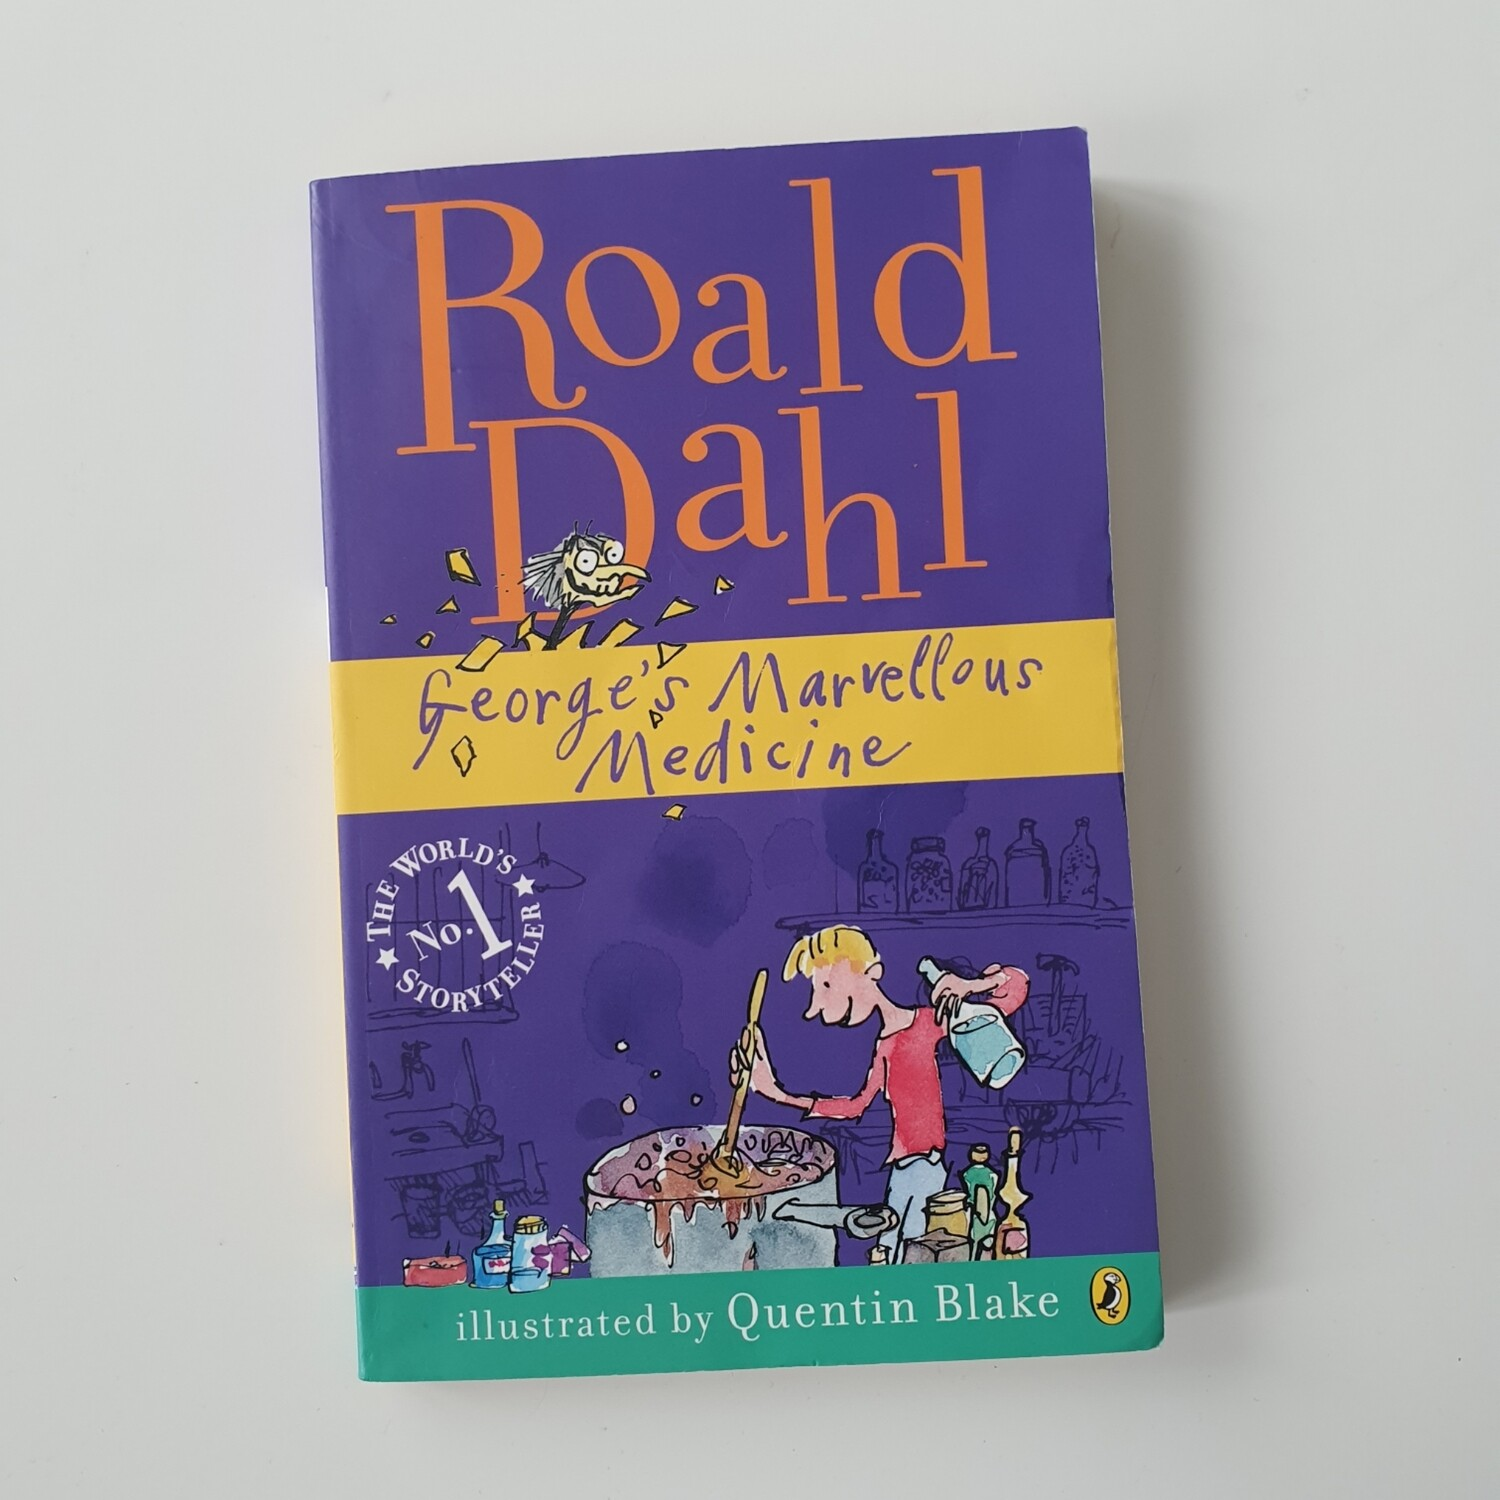 George's Marvellous Medicine by Roald Dahl Notebook - made from a paperback book